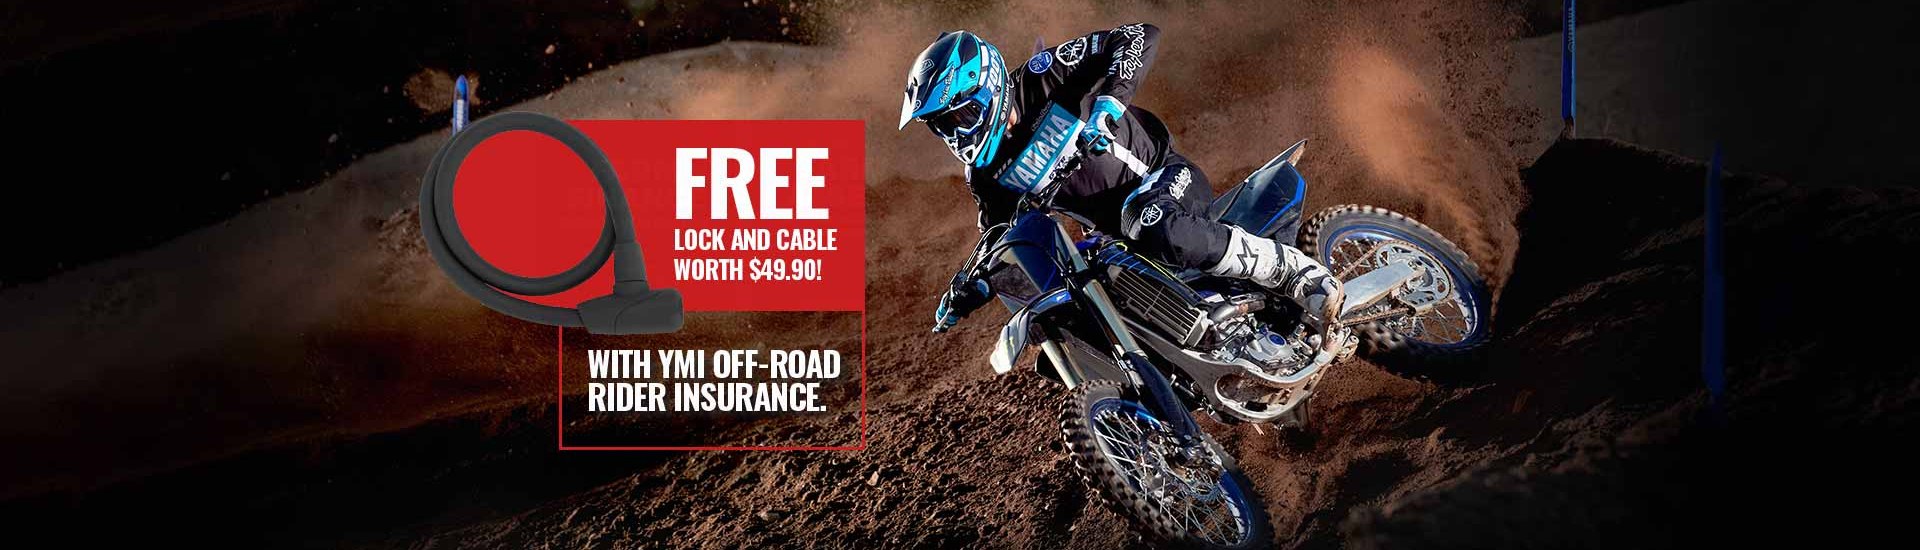 https://www.yamahas.nz/i/Images/promos/Specials_3.jpg